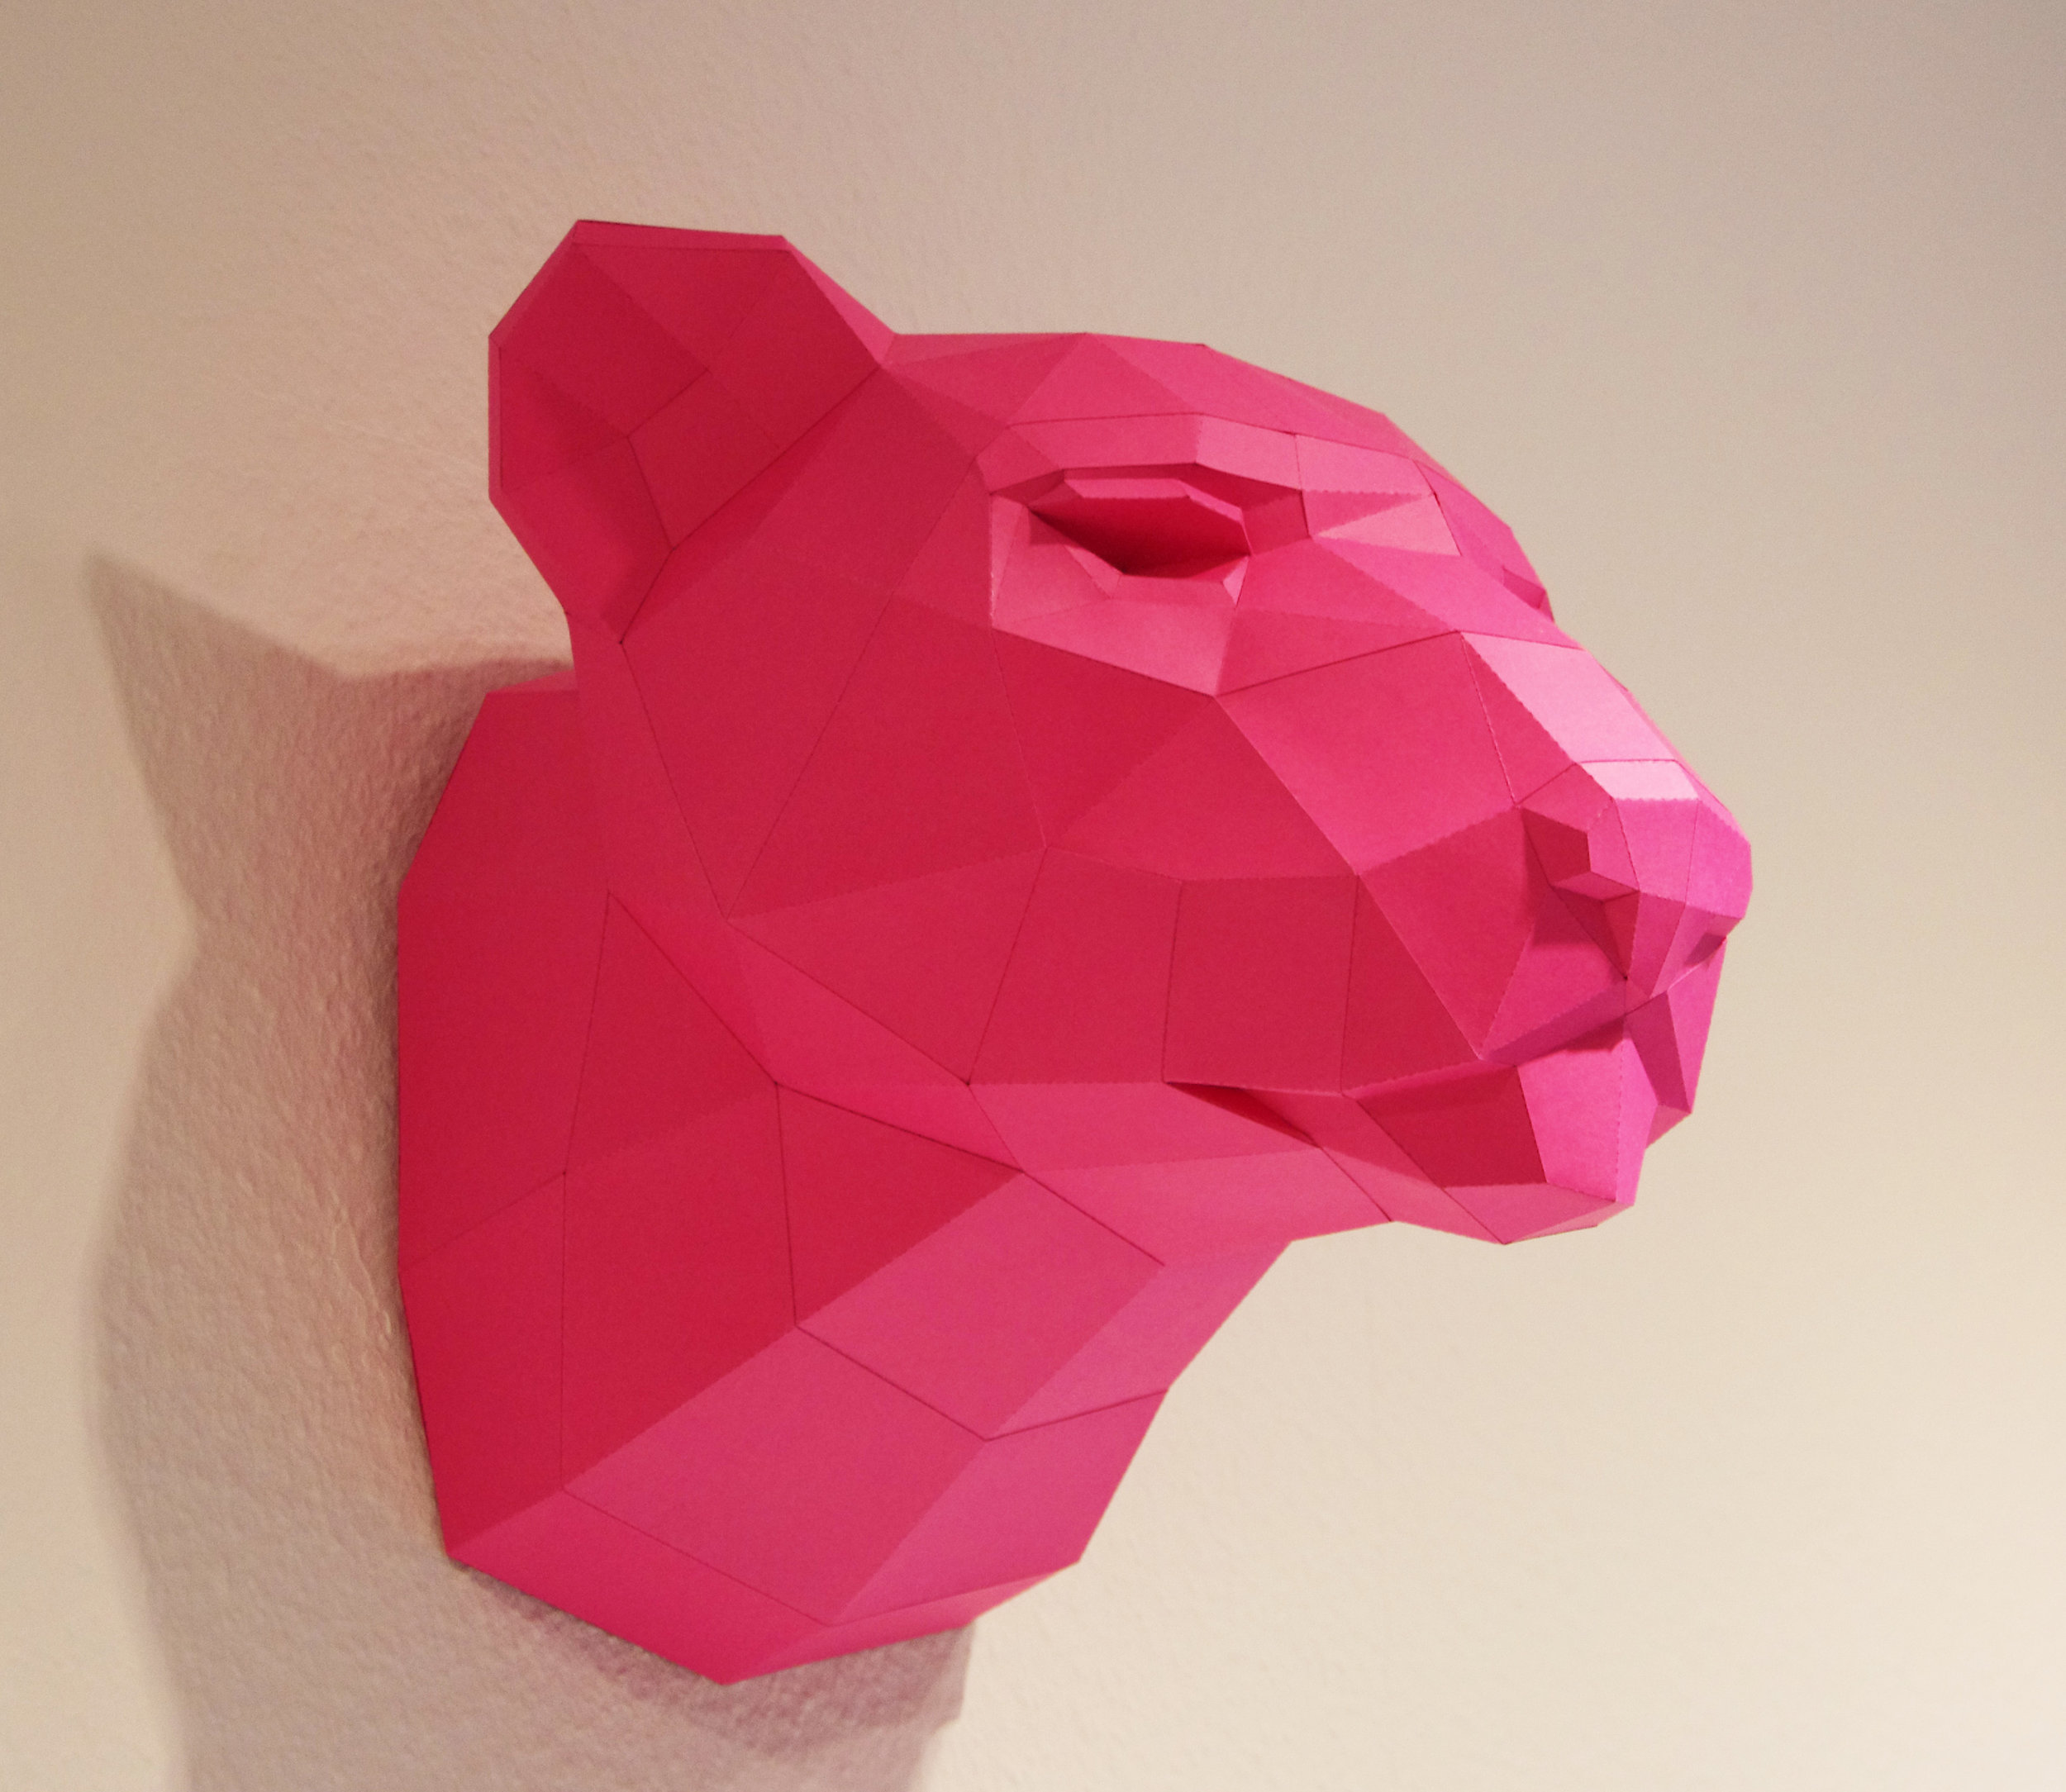 Paperwolf More Information About Dog Origami Diagram On The Site Http Static Leopard Paper Sculpture